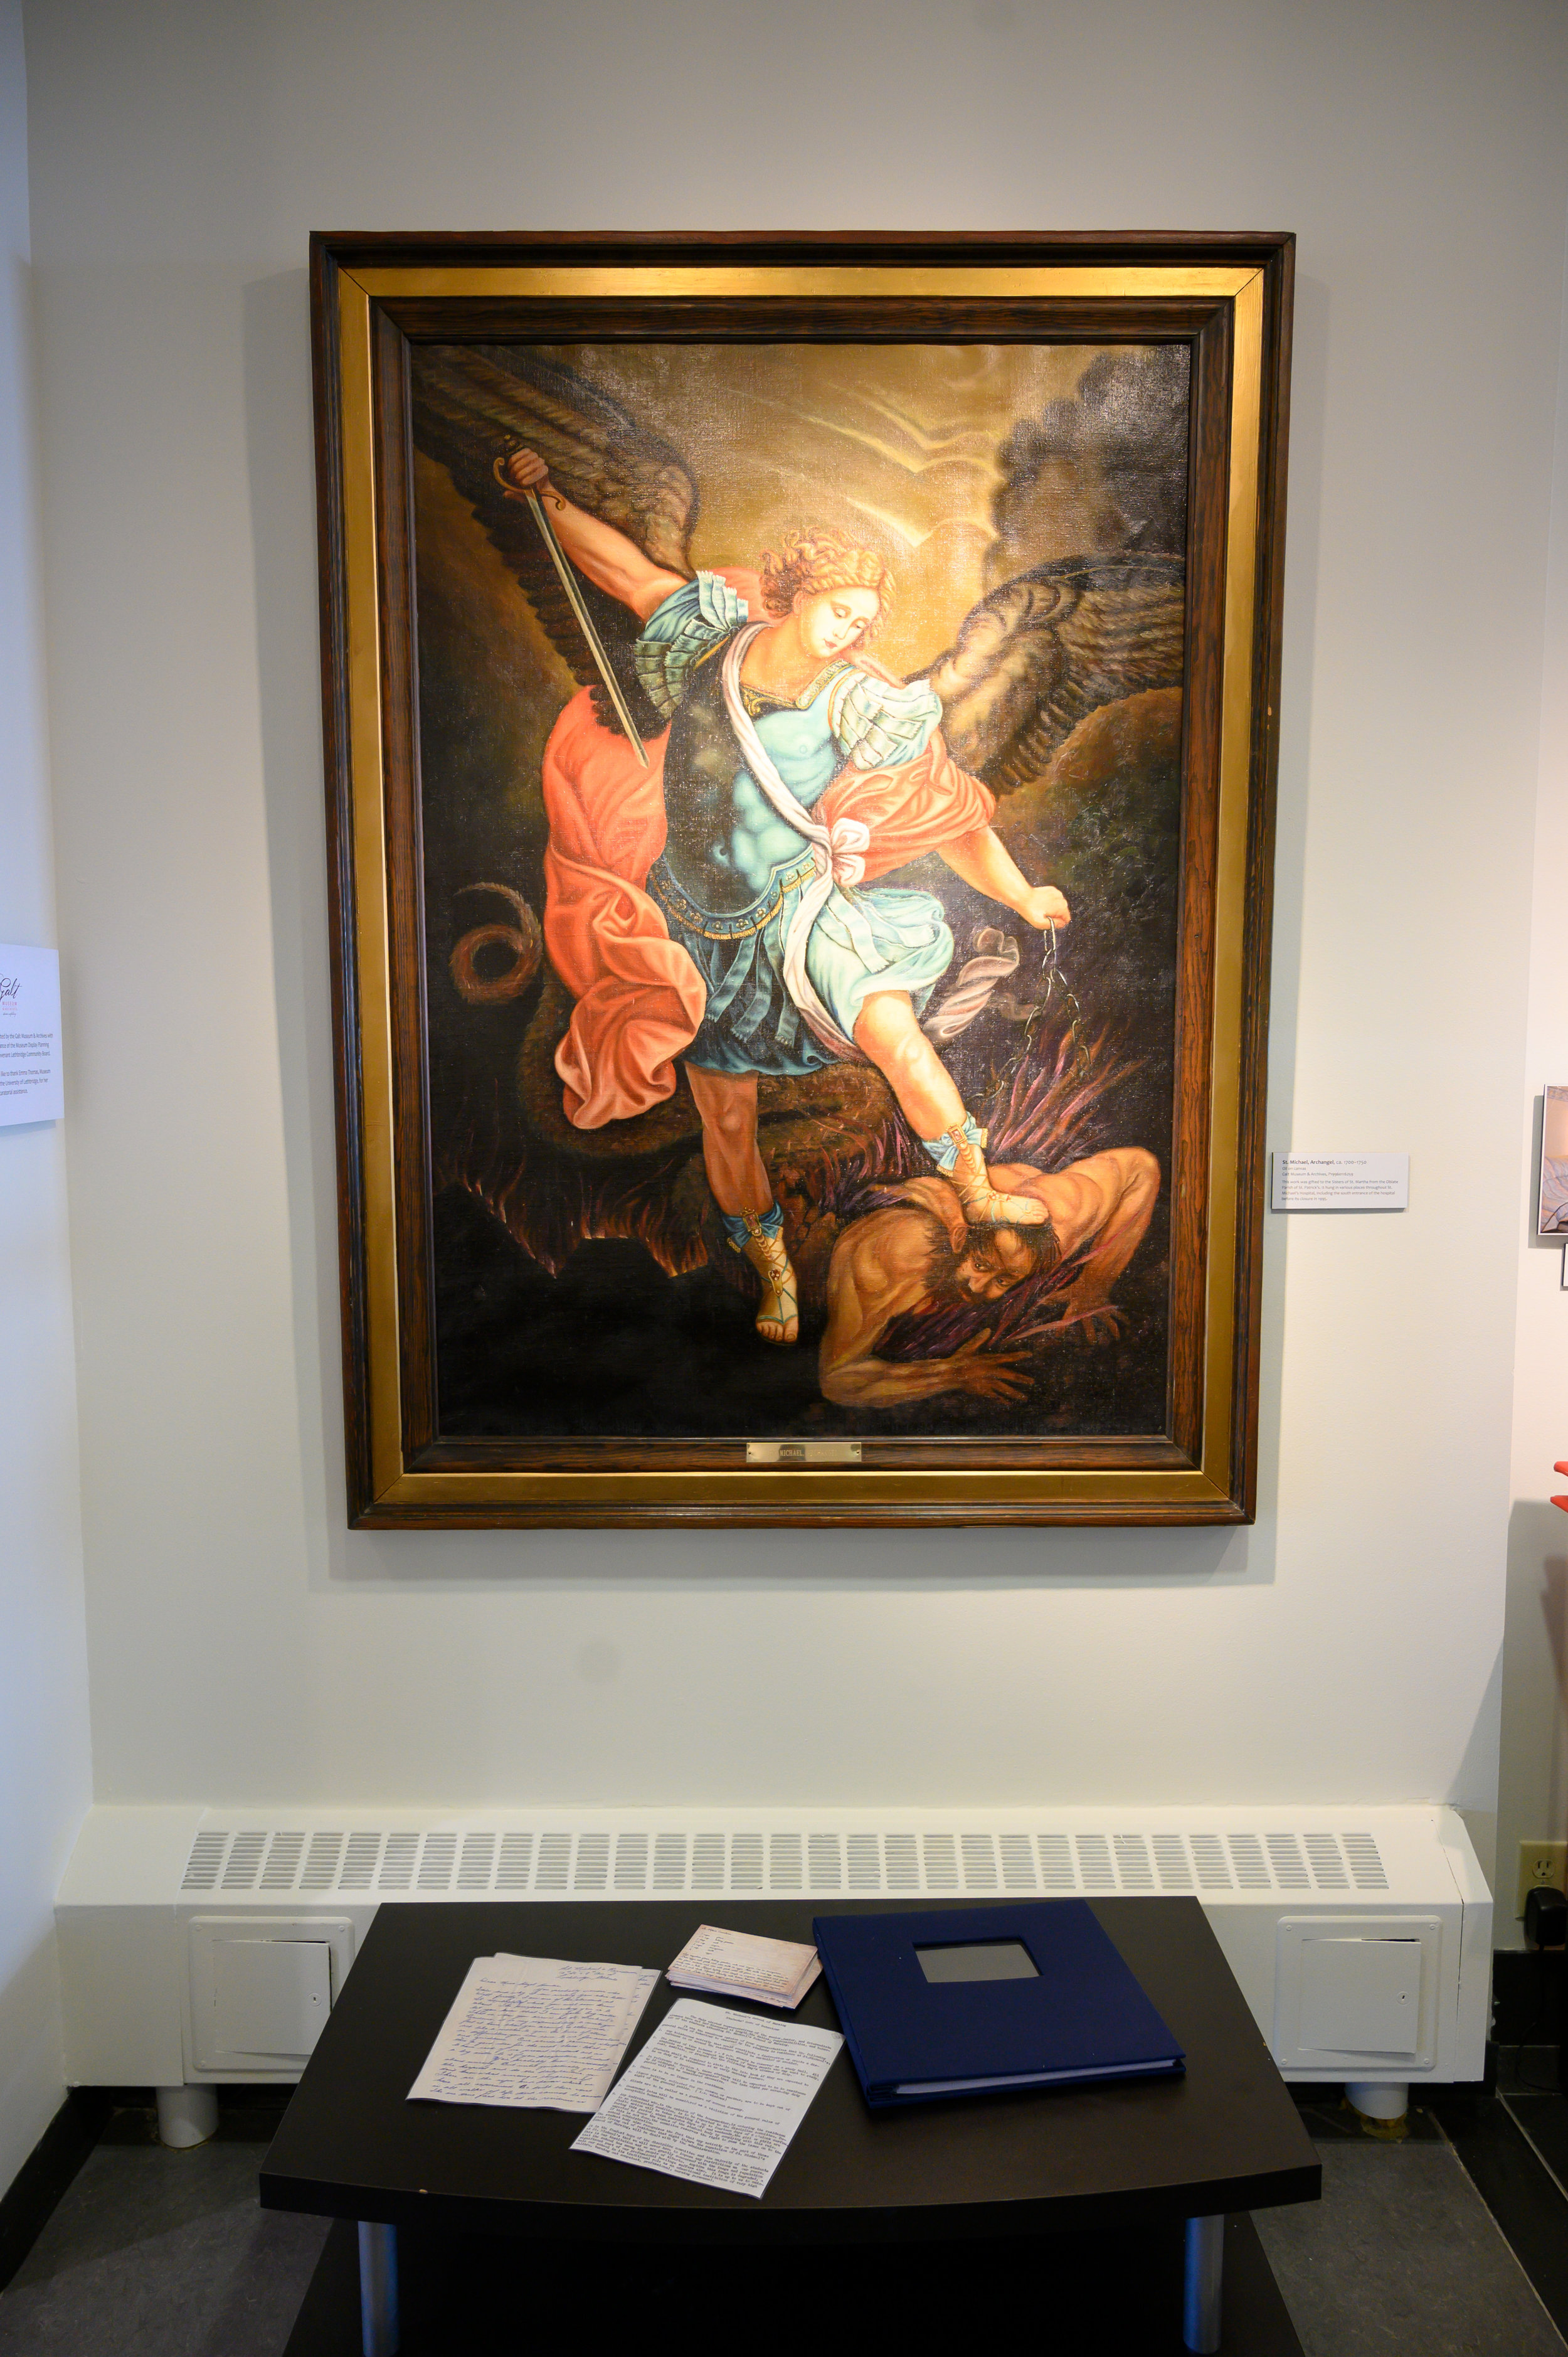 A painting of St. Michael that was installed in the St. Michael's Hospital